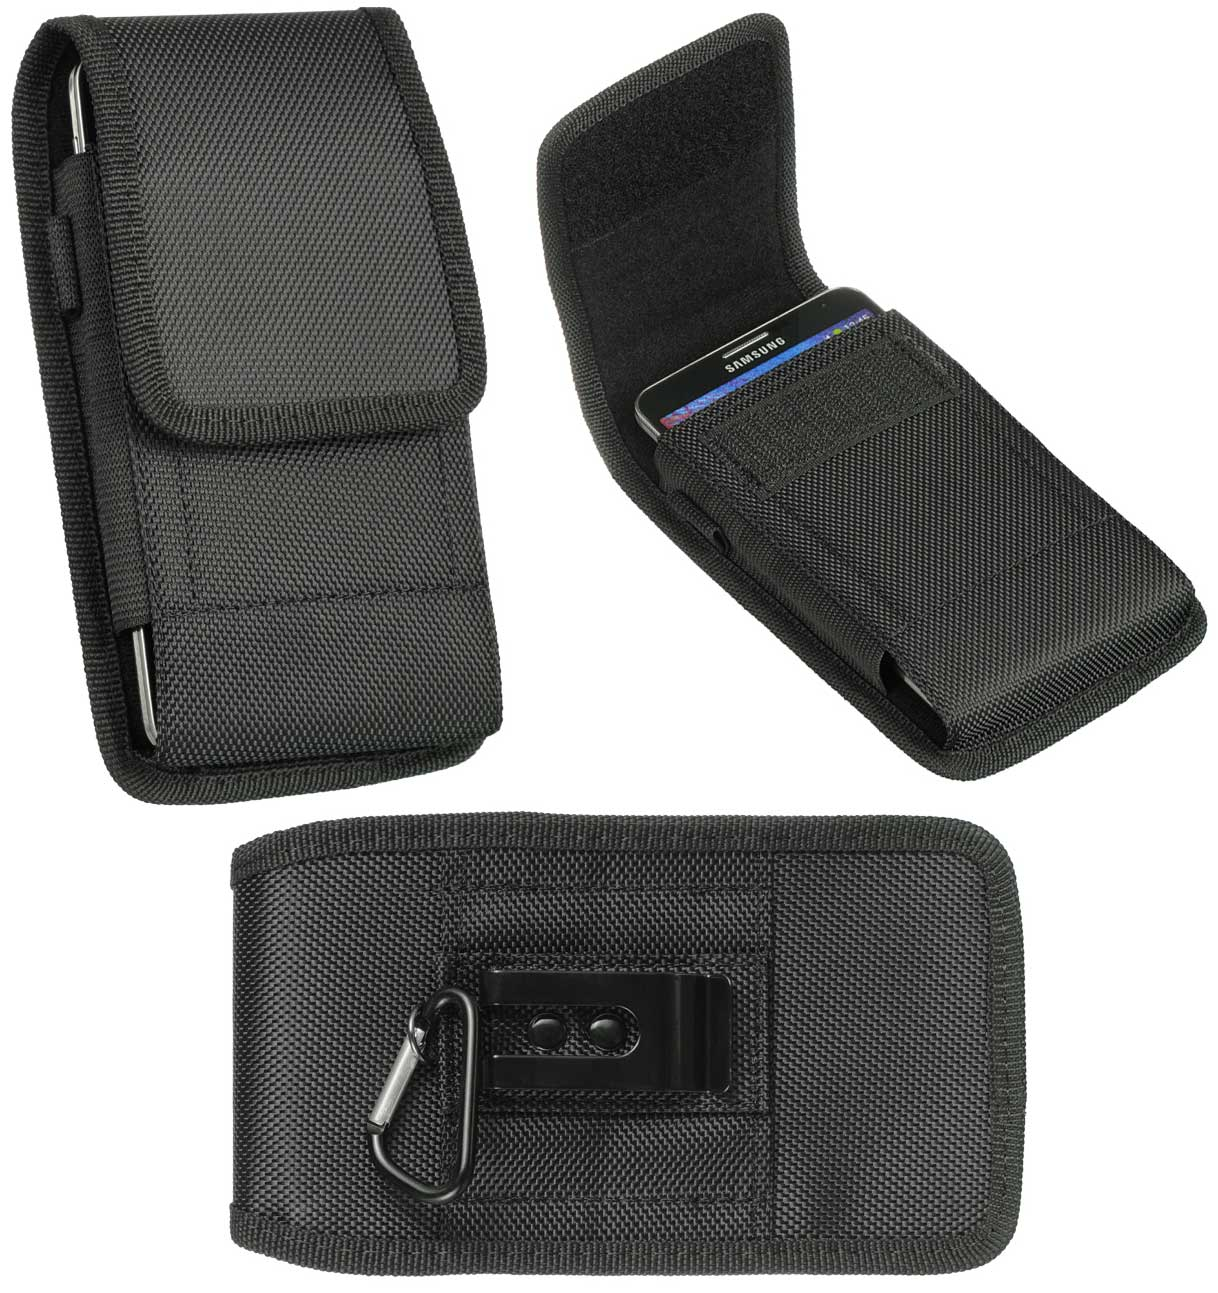 Nokia Lumia Icon Neoprene Nylon Case Pouch Clip Hook Black